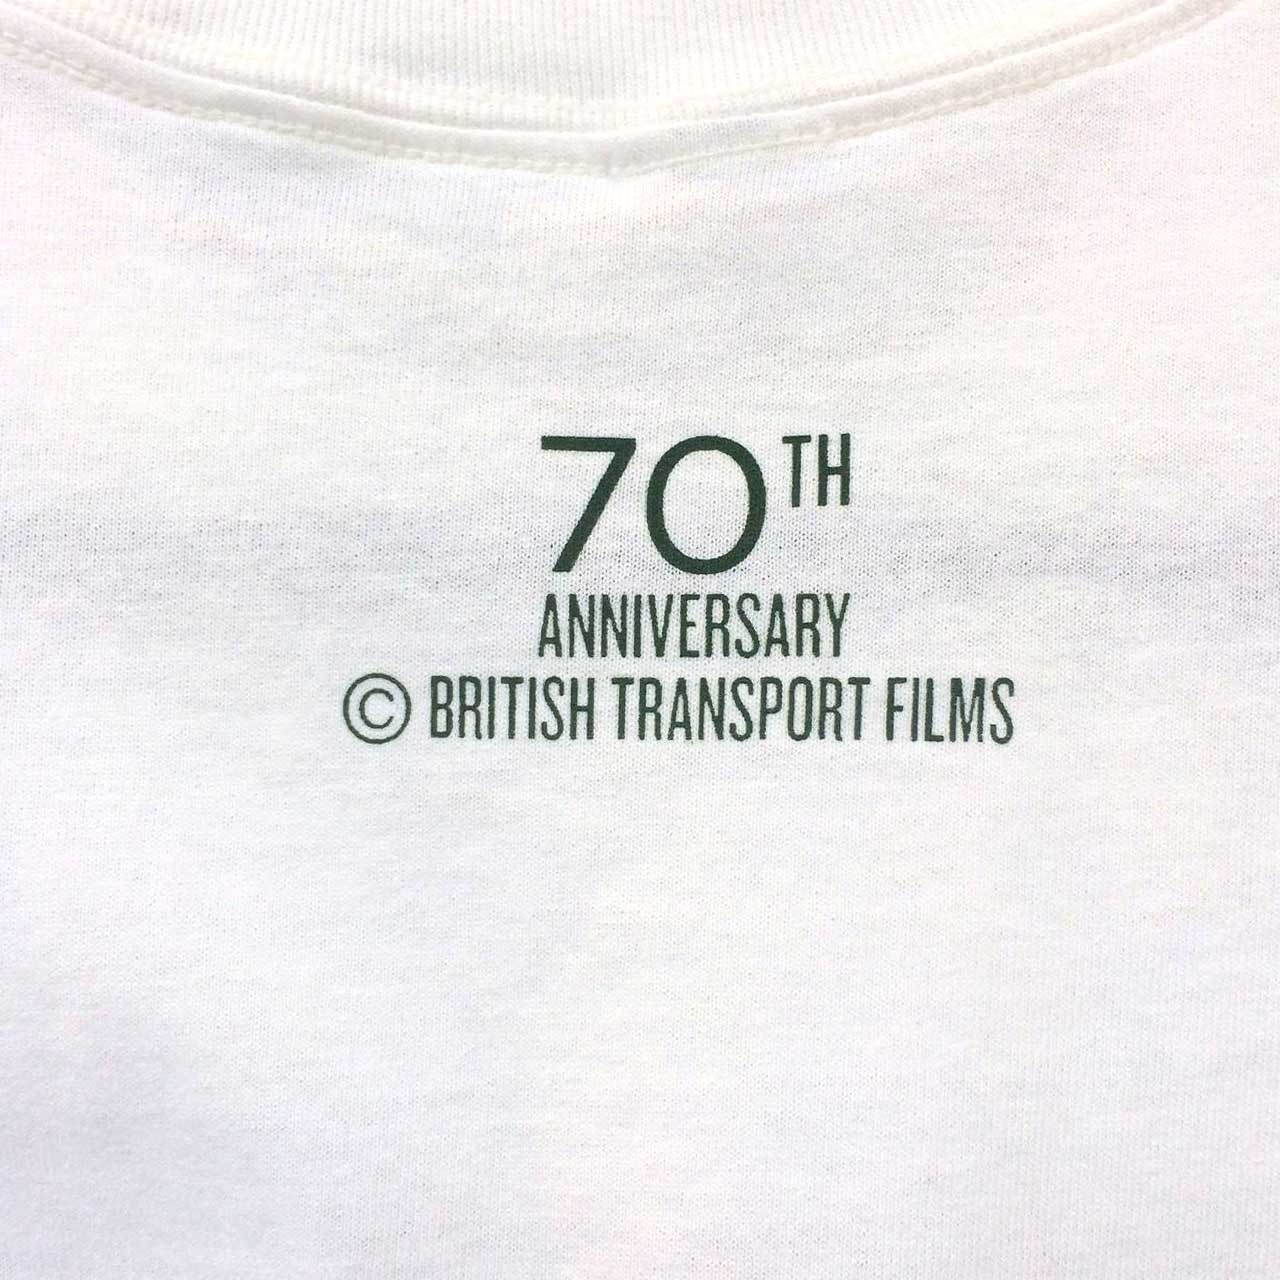 Buy British Transport Films 70th Anniversary T-shirt (White)